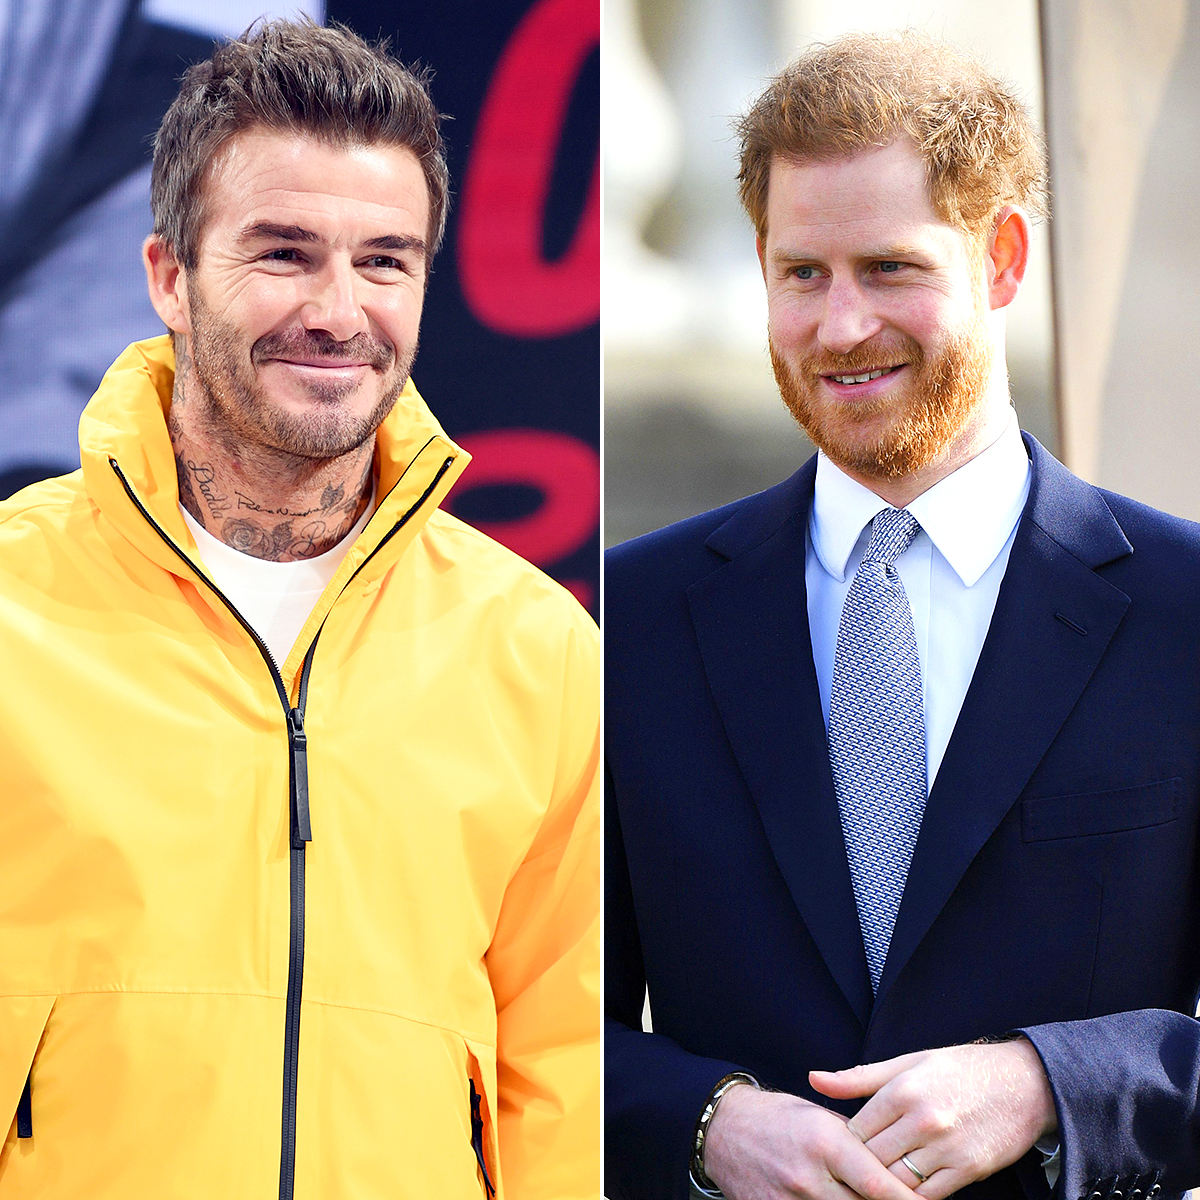 David-Beckham-Praises-Prince-Harry-as-a-Father-After-Step-Down